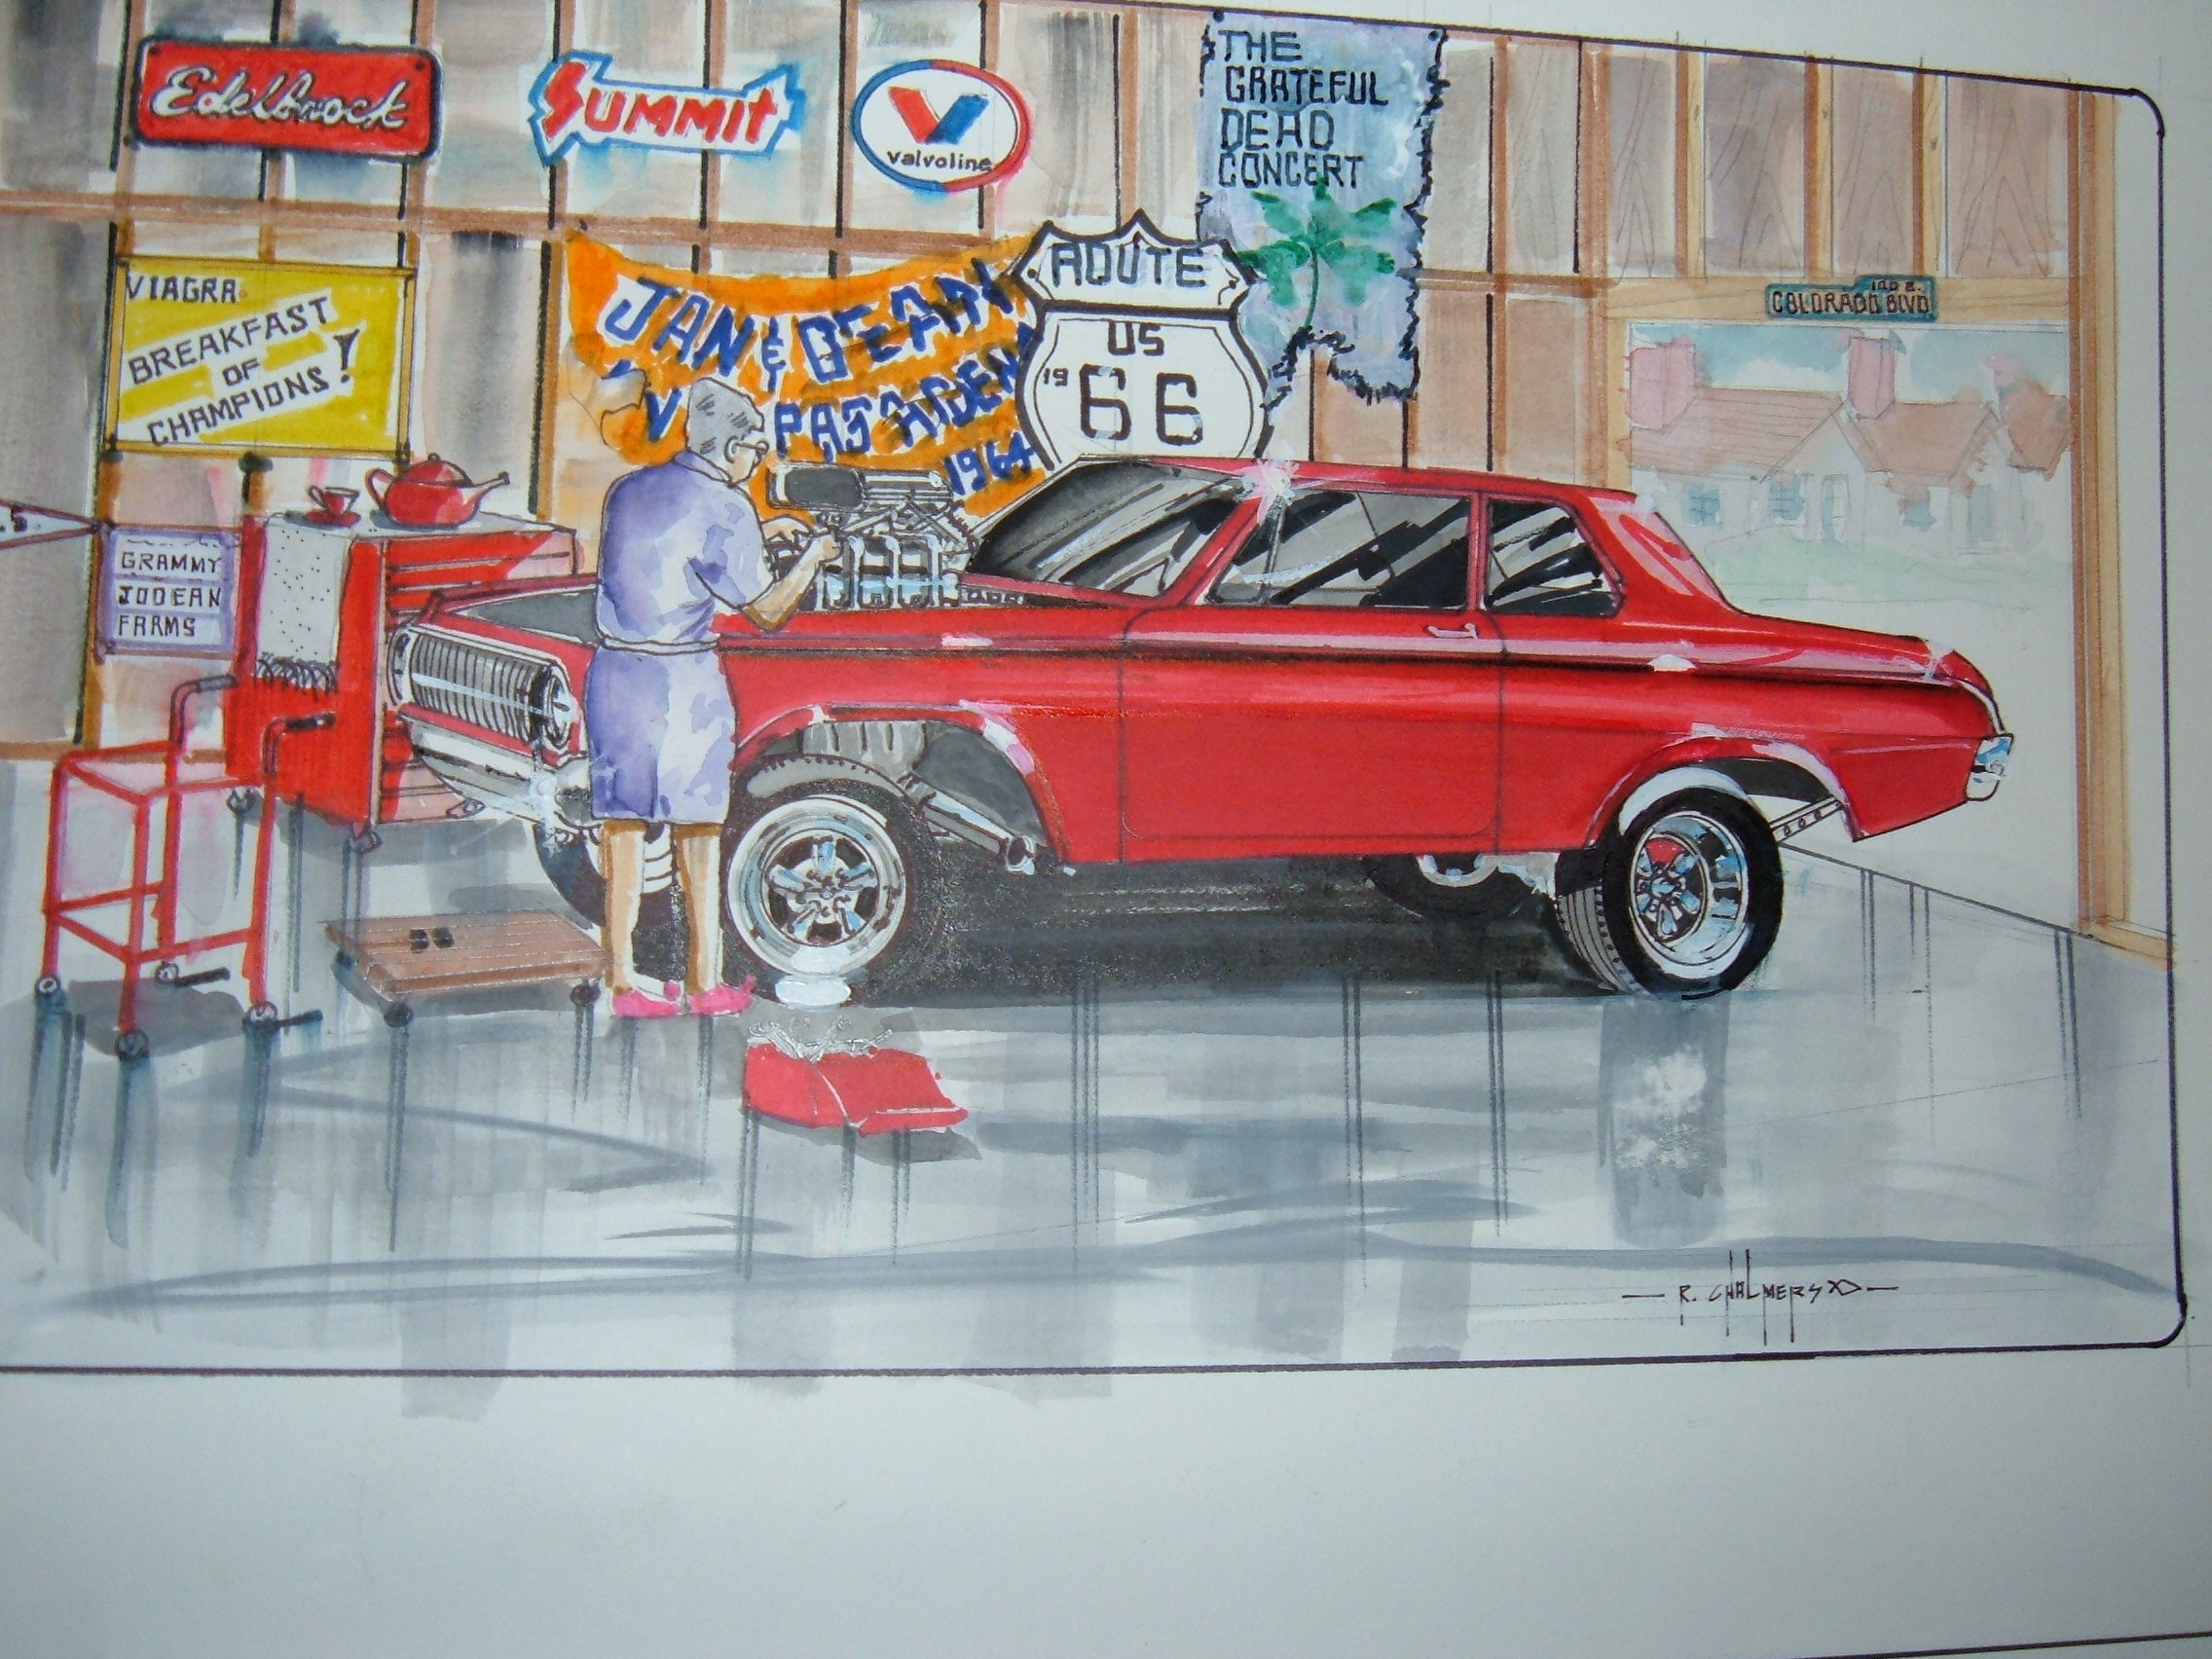 Click image for larger version  Name:Ron's Art 008.jpg Views:206 Size:715.9 KB ID:54133